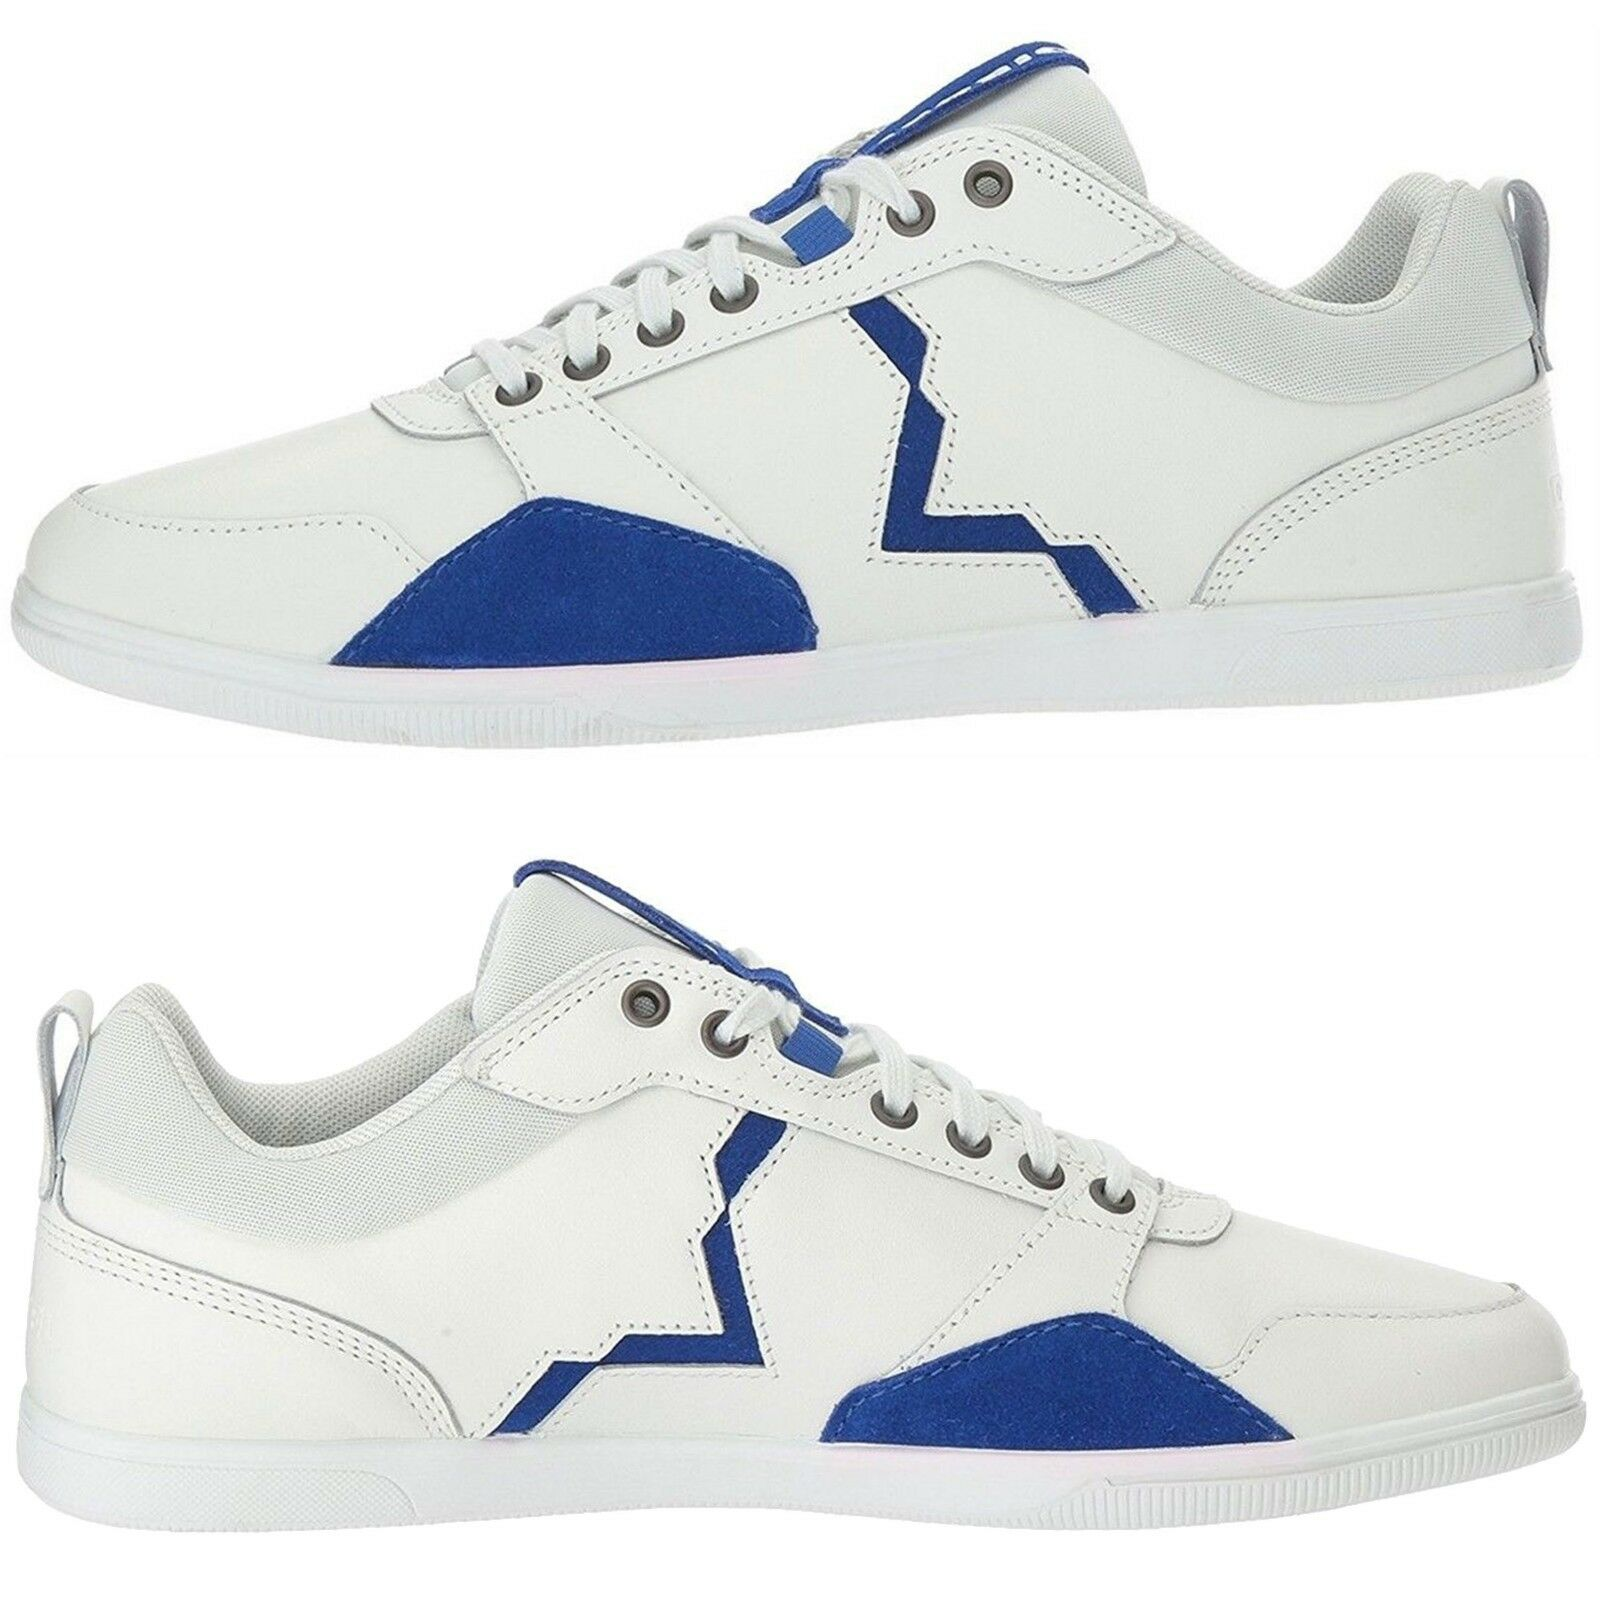 Diesel Uomo Athletic/Casual Shoes Happy Hours Hours Hours S-Tage Lace Up  NEW White 79e8db